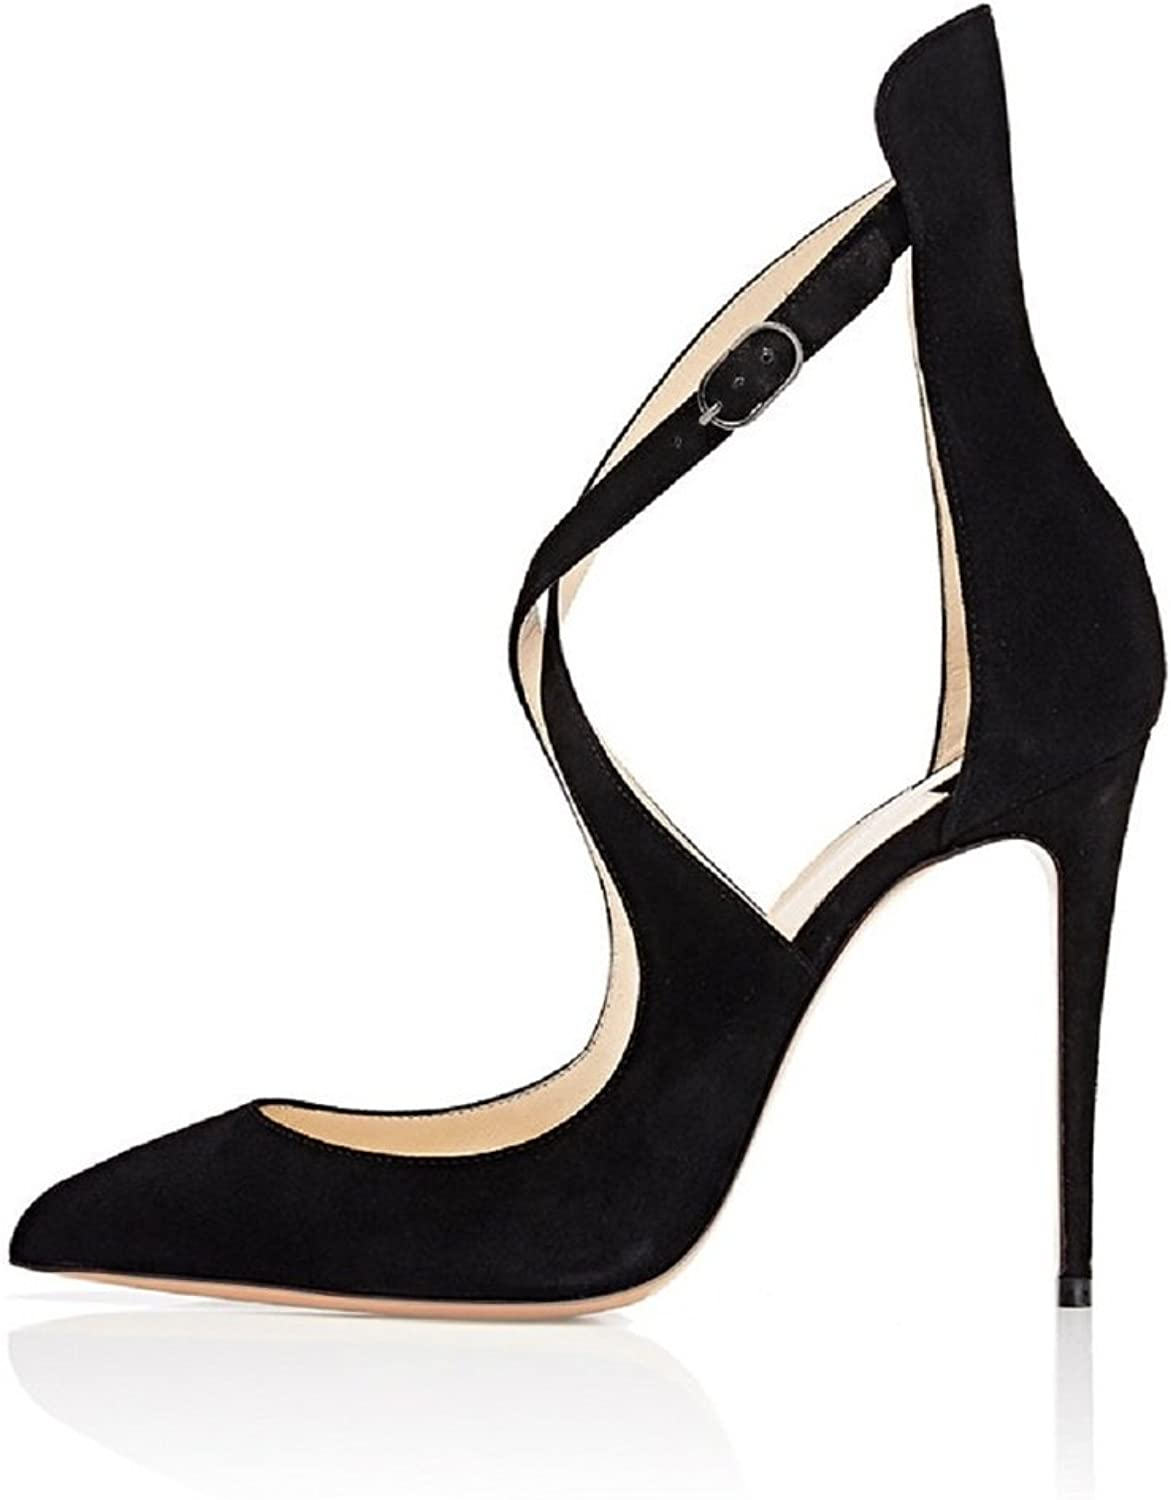 Sammitop Women's Pointed Toe Stiletto High Heels Crisscross Strappy Pumps Ladies Ankle Buckle Strap shoes